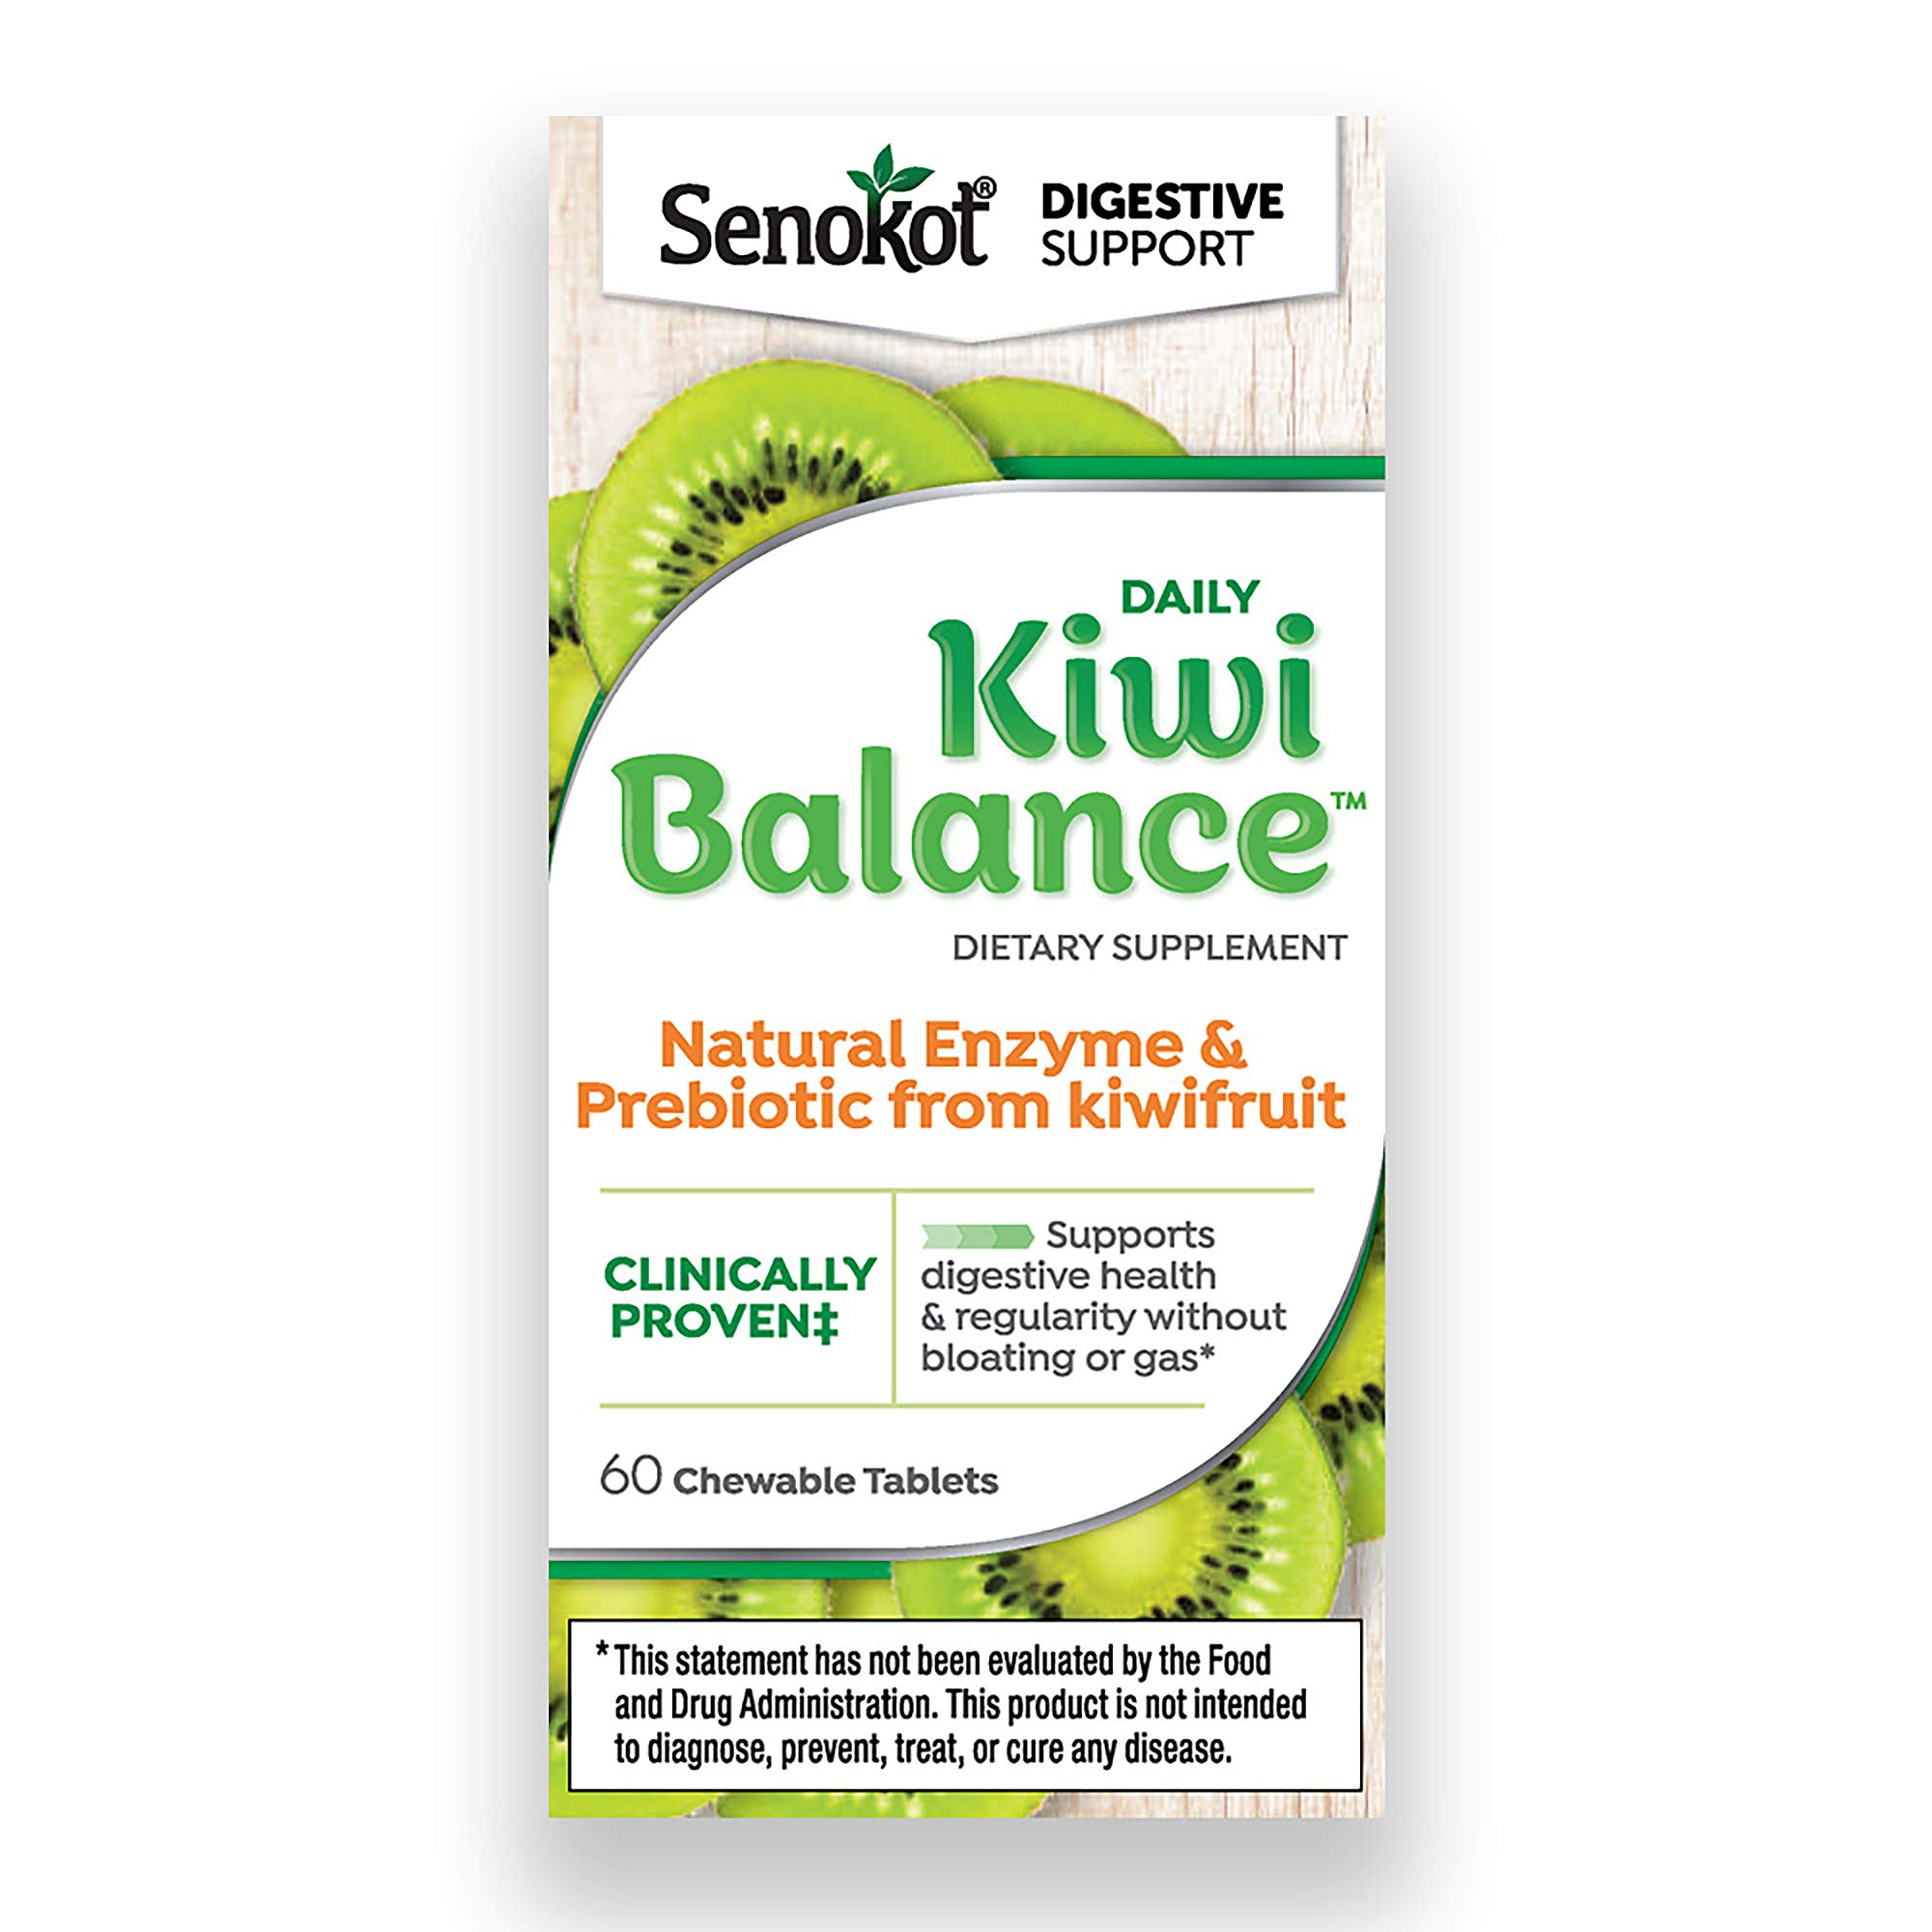 Senokot Daily Kiwi Balance Digestion & Regularity Support Dietary Supplement Chewable Tablet (60Count) by Senokot